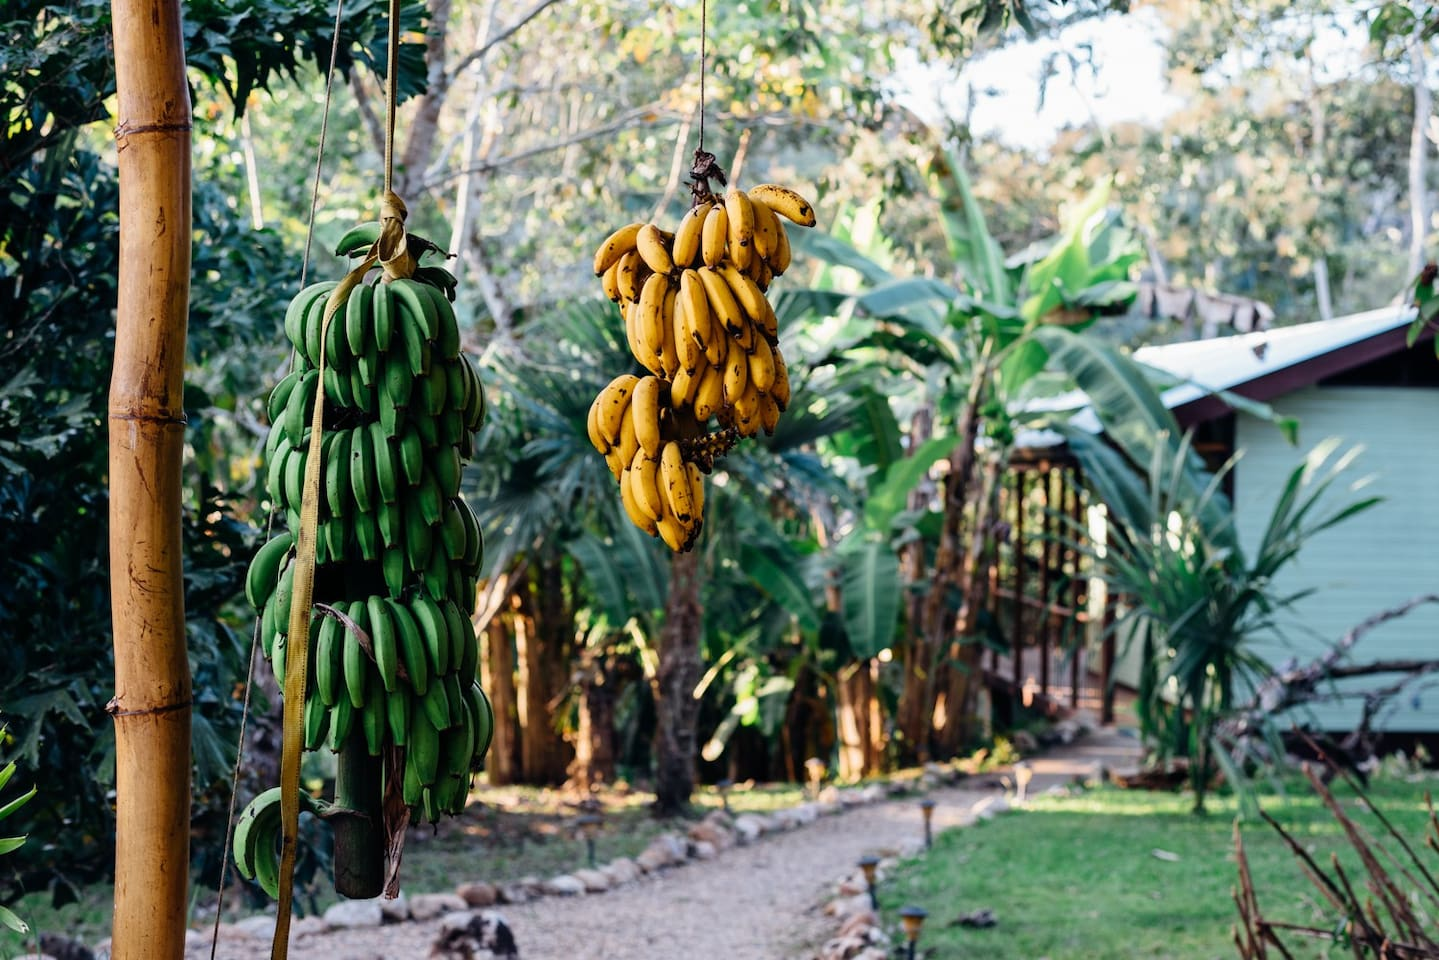 The reason for the Banana Bungalow name!  We have two types of bananas growing on the property.  Our guests are welcome to eat any of our 'edible landscape.'